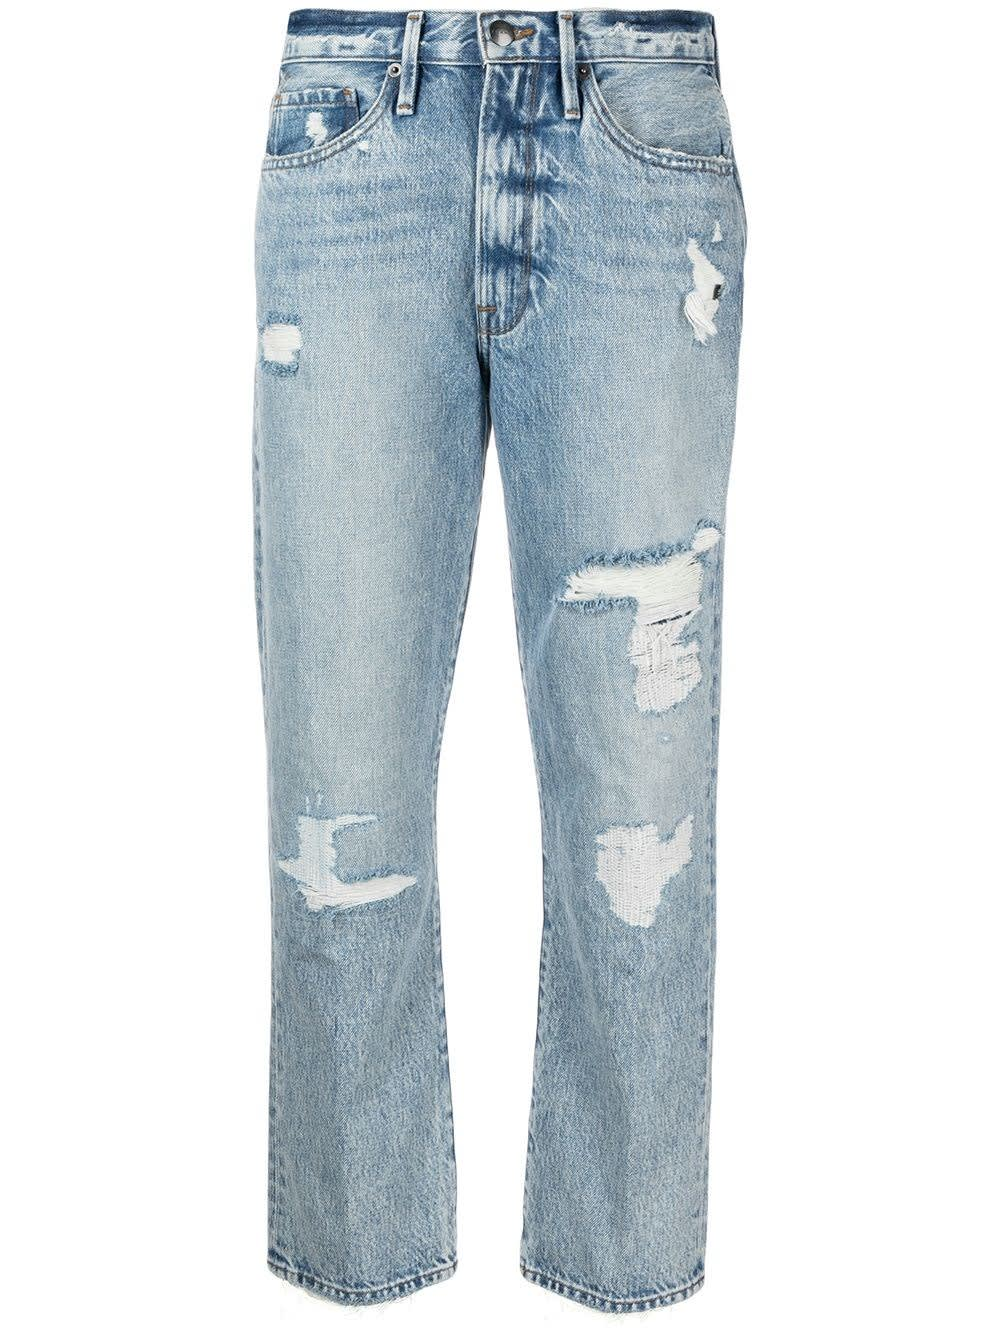 Frame FIVE POCKETS DENIM JEANS WITH RIPS DETAIL